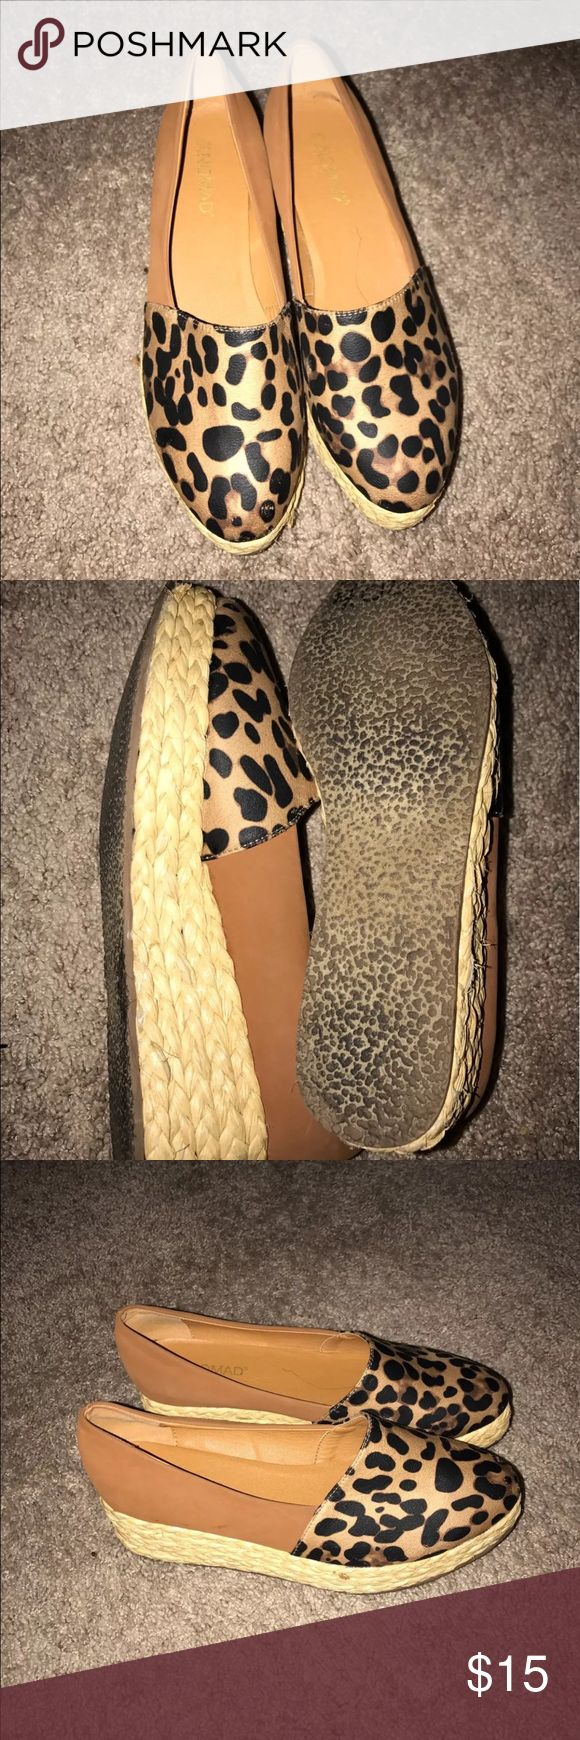 Nomad Leopard Print Wedges Size 9.5 You are bidding on a pair of Nomad wedge leopard print shoes size 9.5 great condition Shoes Espadrilles